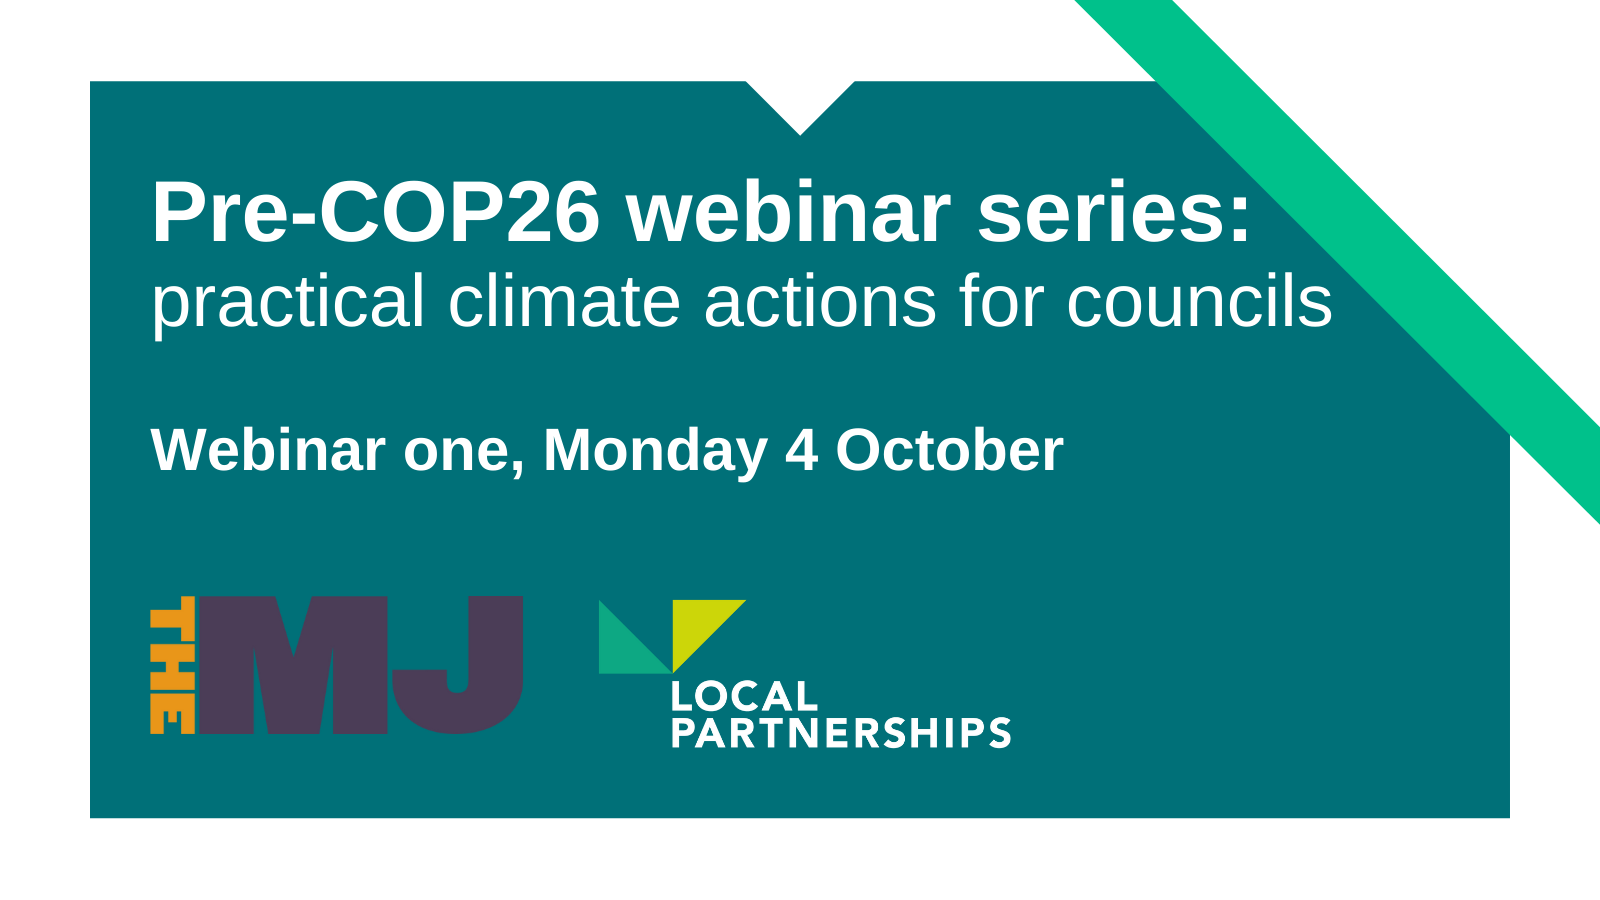 Action on climate crisis webinar one: The MJ and Local Partnerships